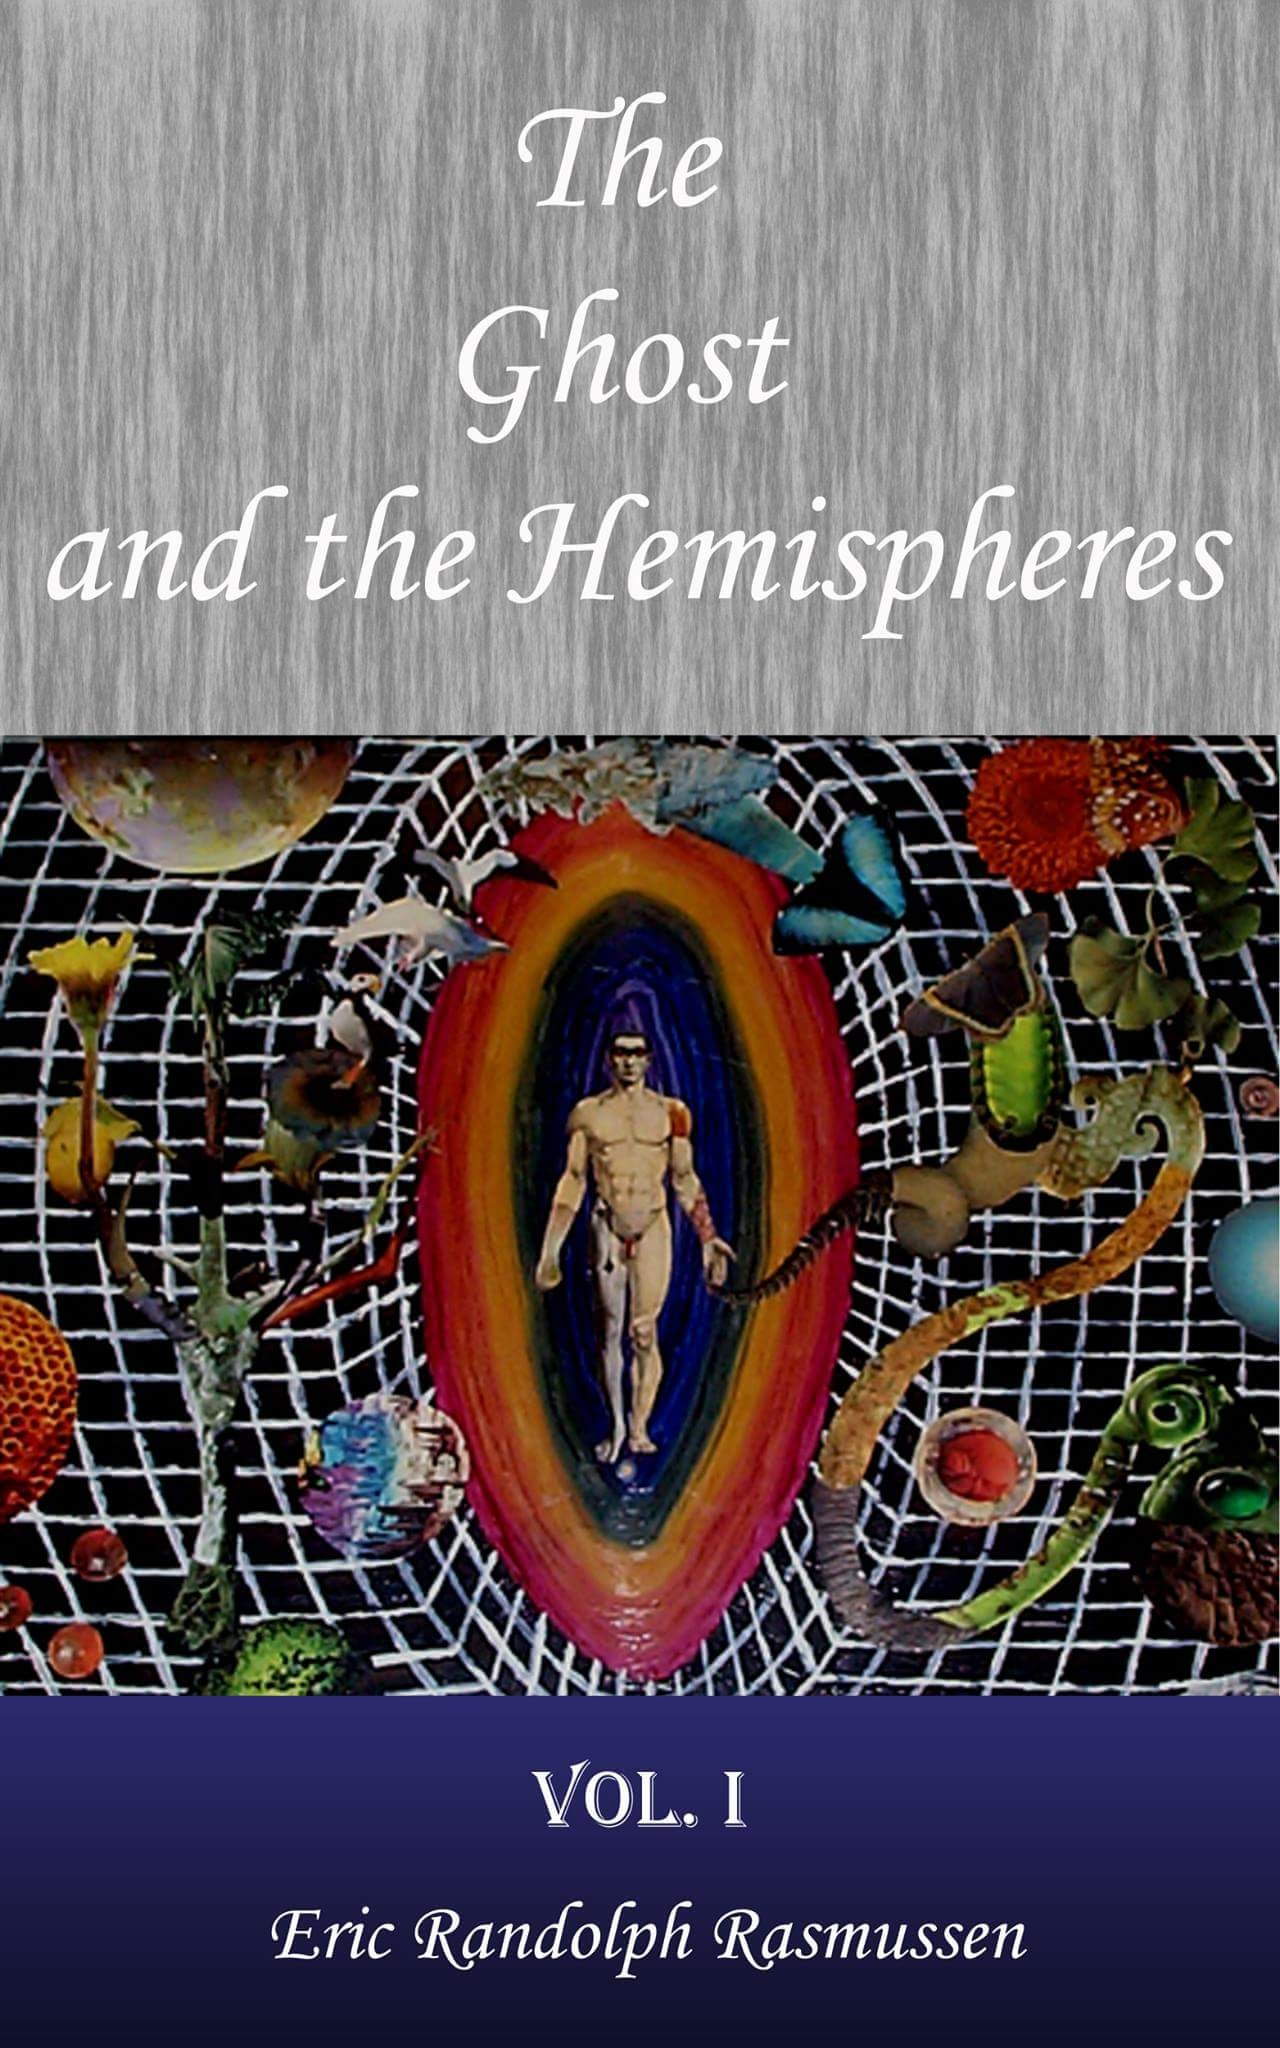 Ghost and Hemispheres Cover Vol. 1